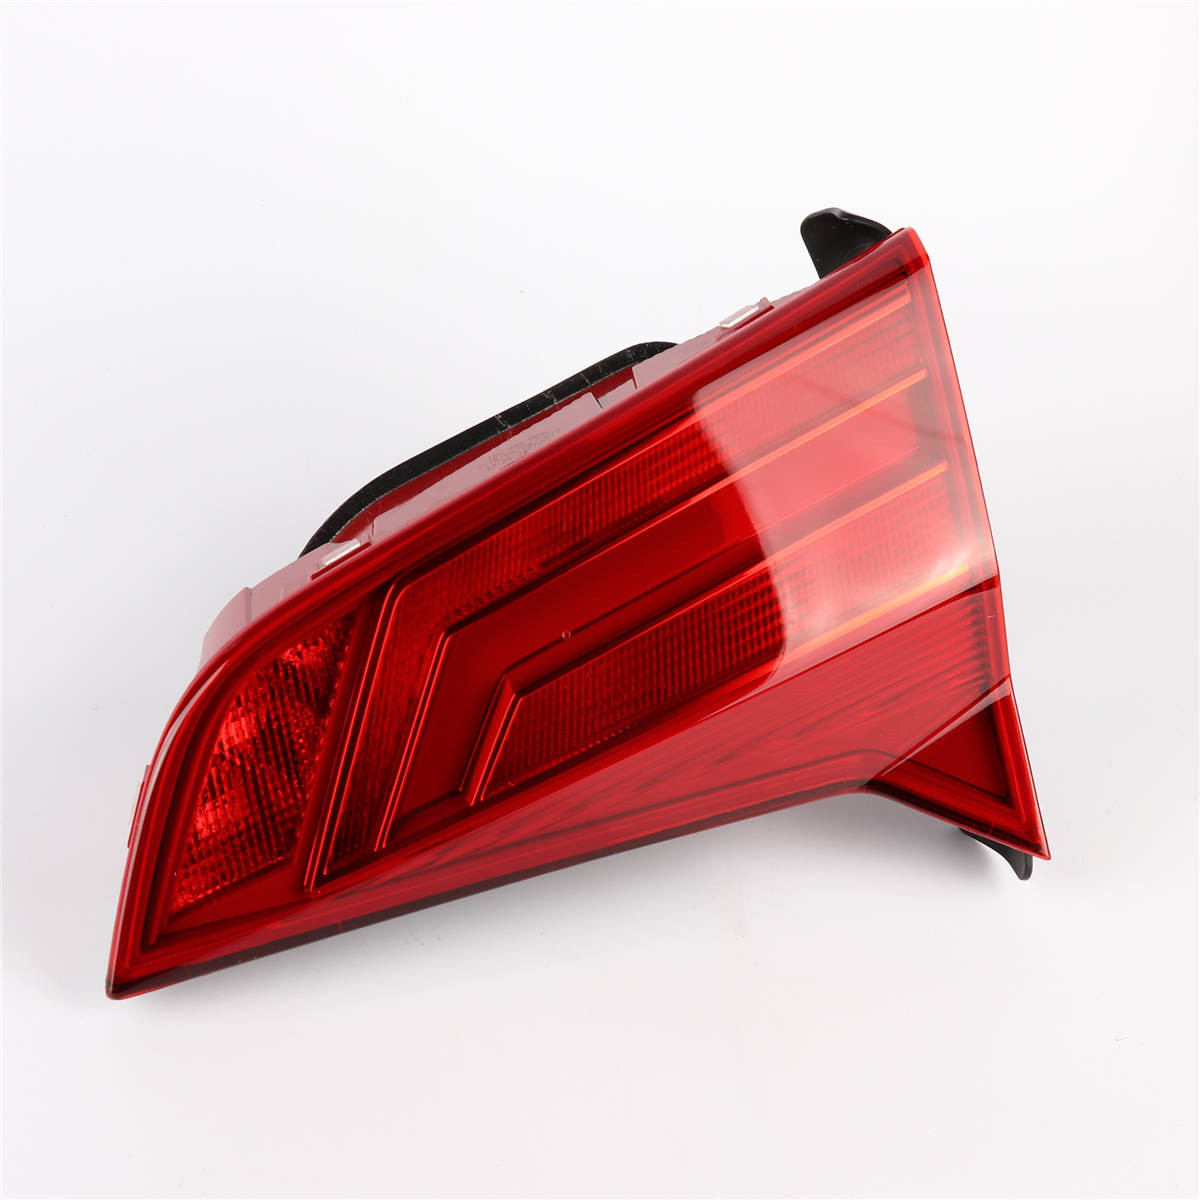 Red Color OEM 1Pcs Left Side LED Light Tail Lights Rear Lamp For VW Volkswagen L18G 945 093 C 2pcs oem left